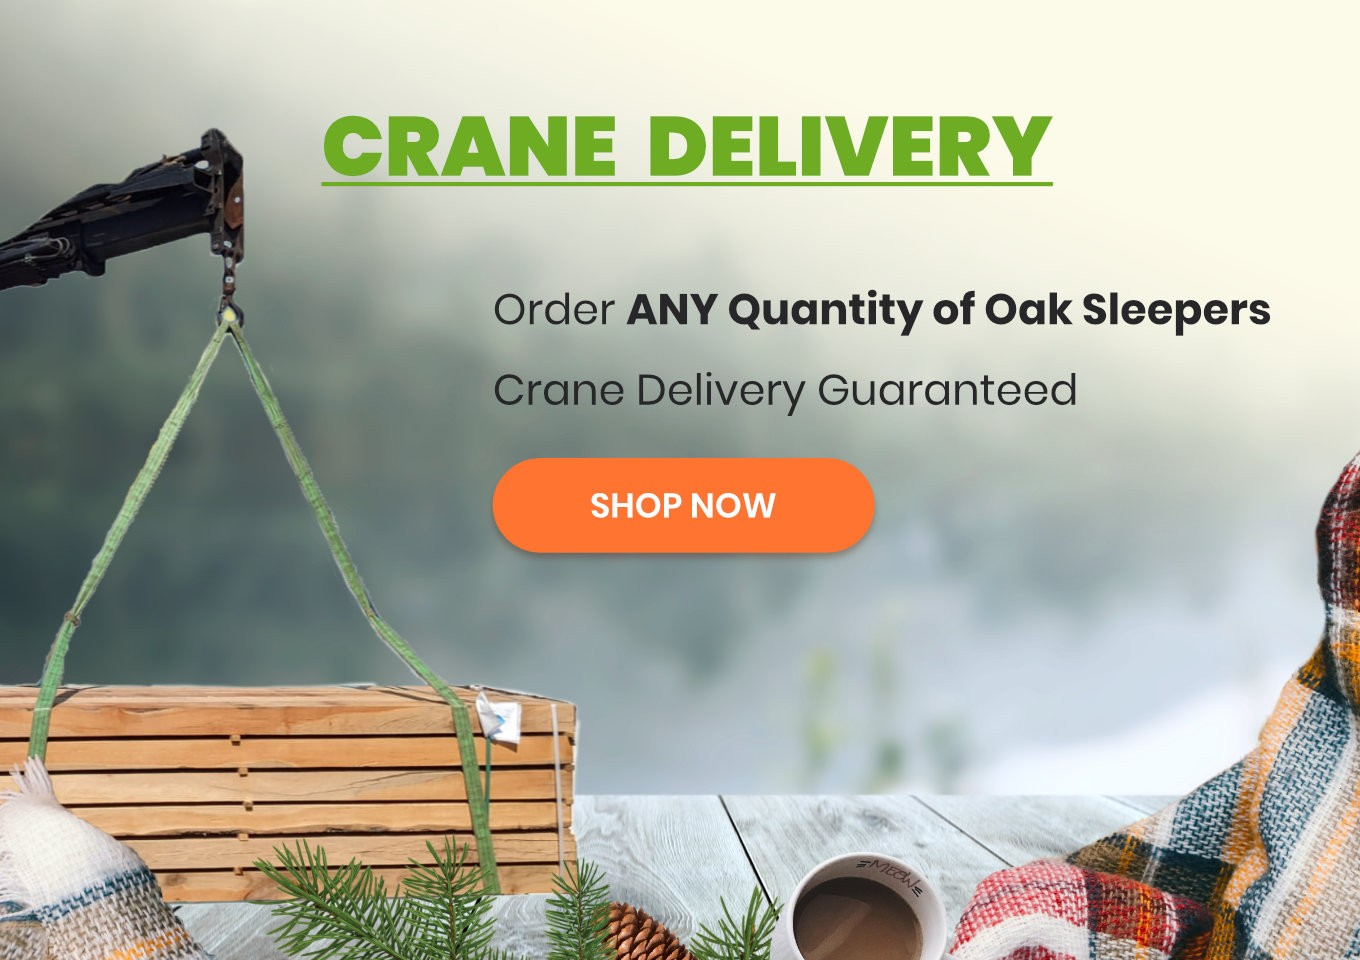 Crane delivery for any quantity of oak sleepers